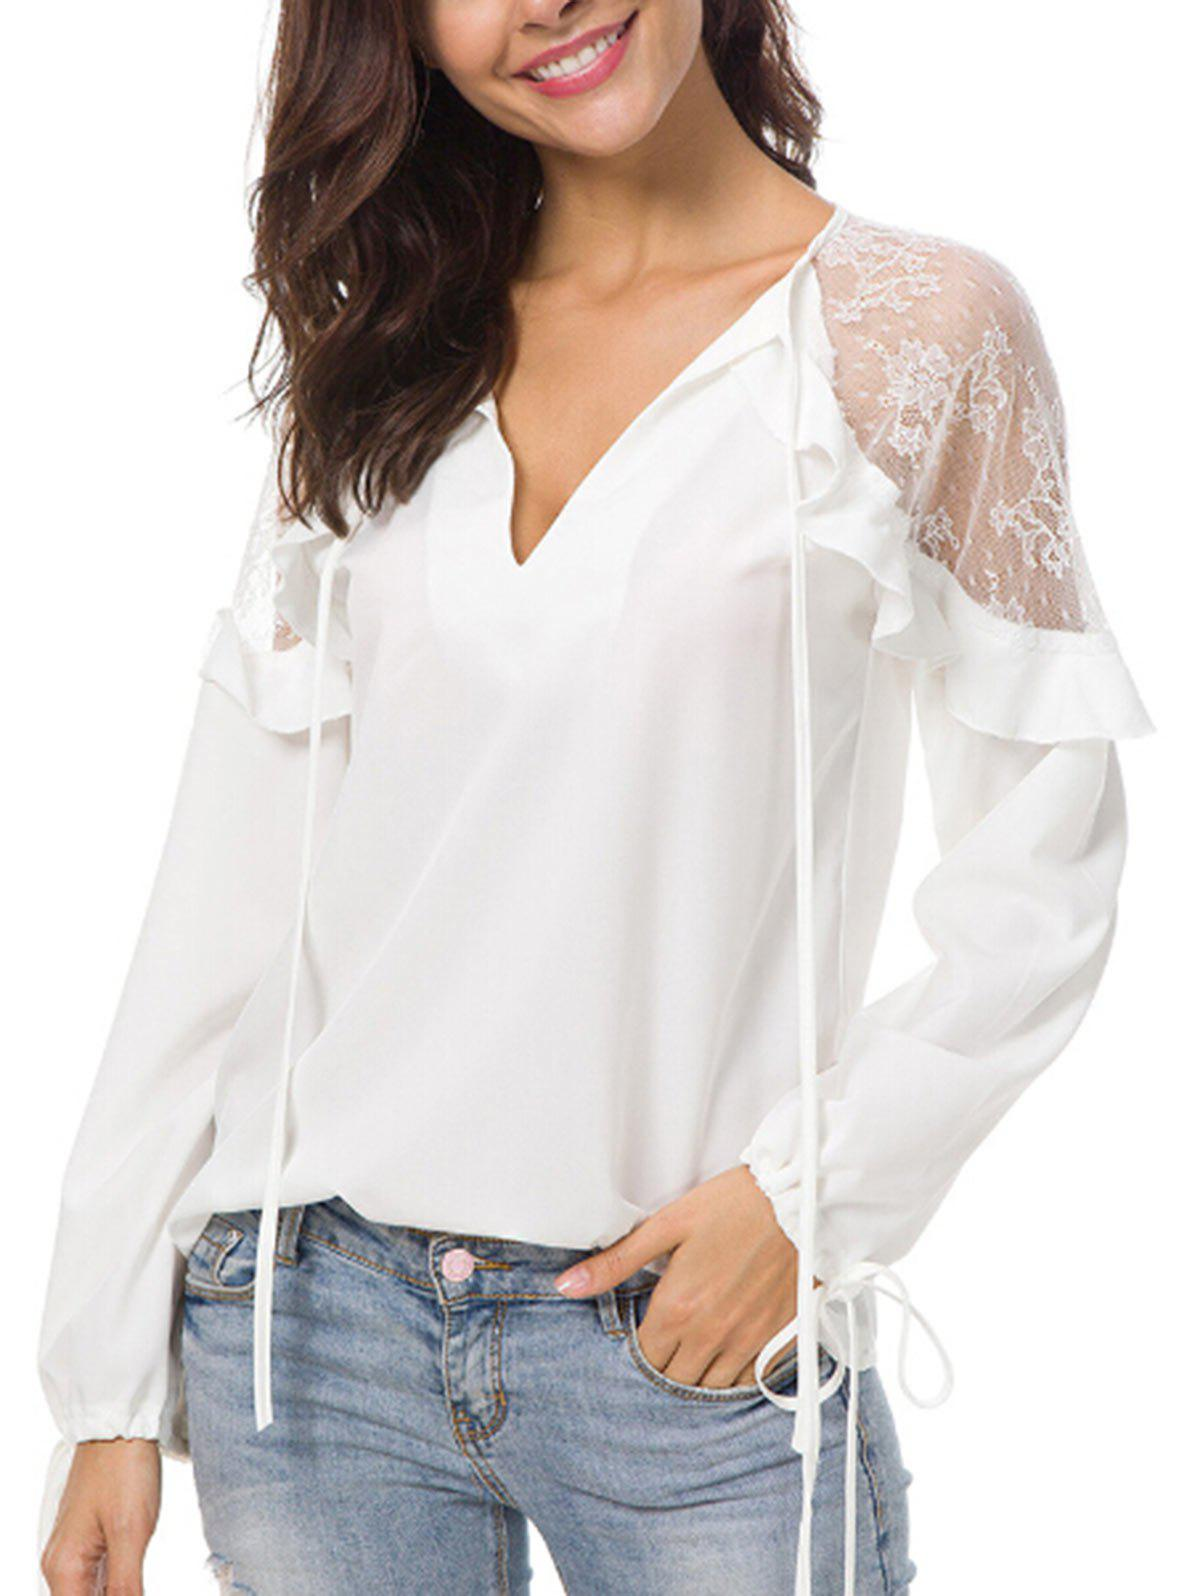 Ruffle Insert Long Sleeve Blouse - WHITE L